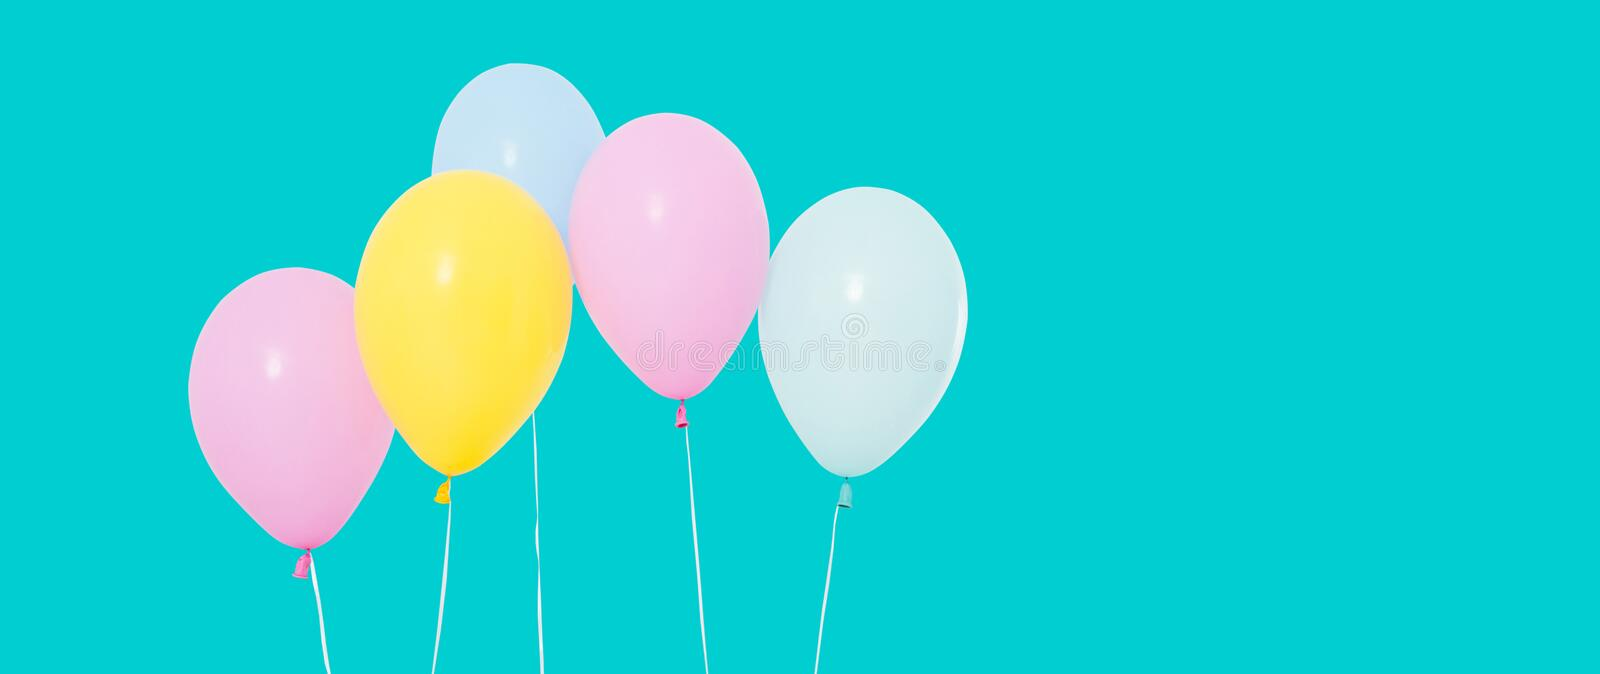 Bunch of colorful balloons on background - copy space royalty free stock image